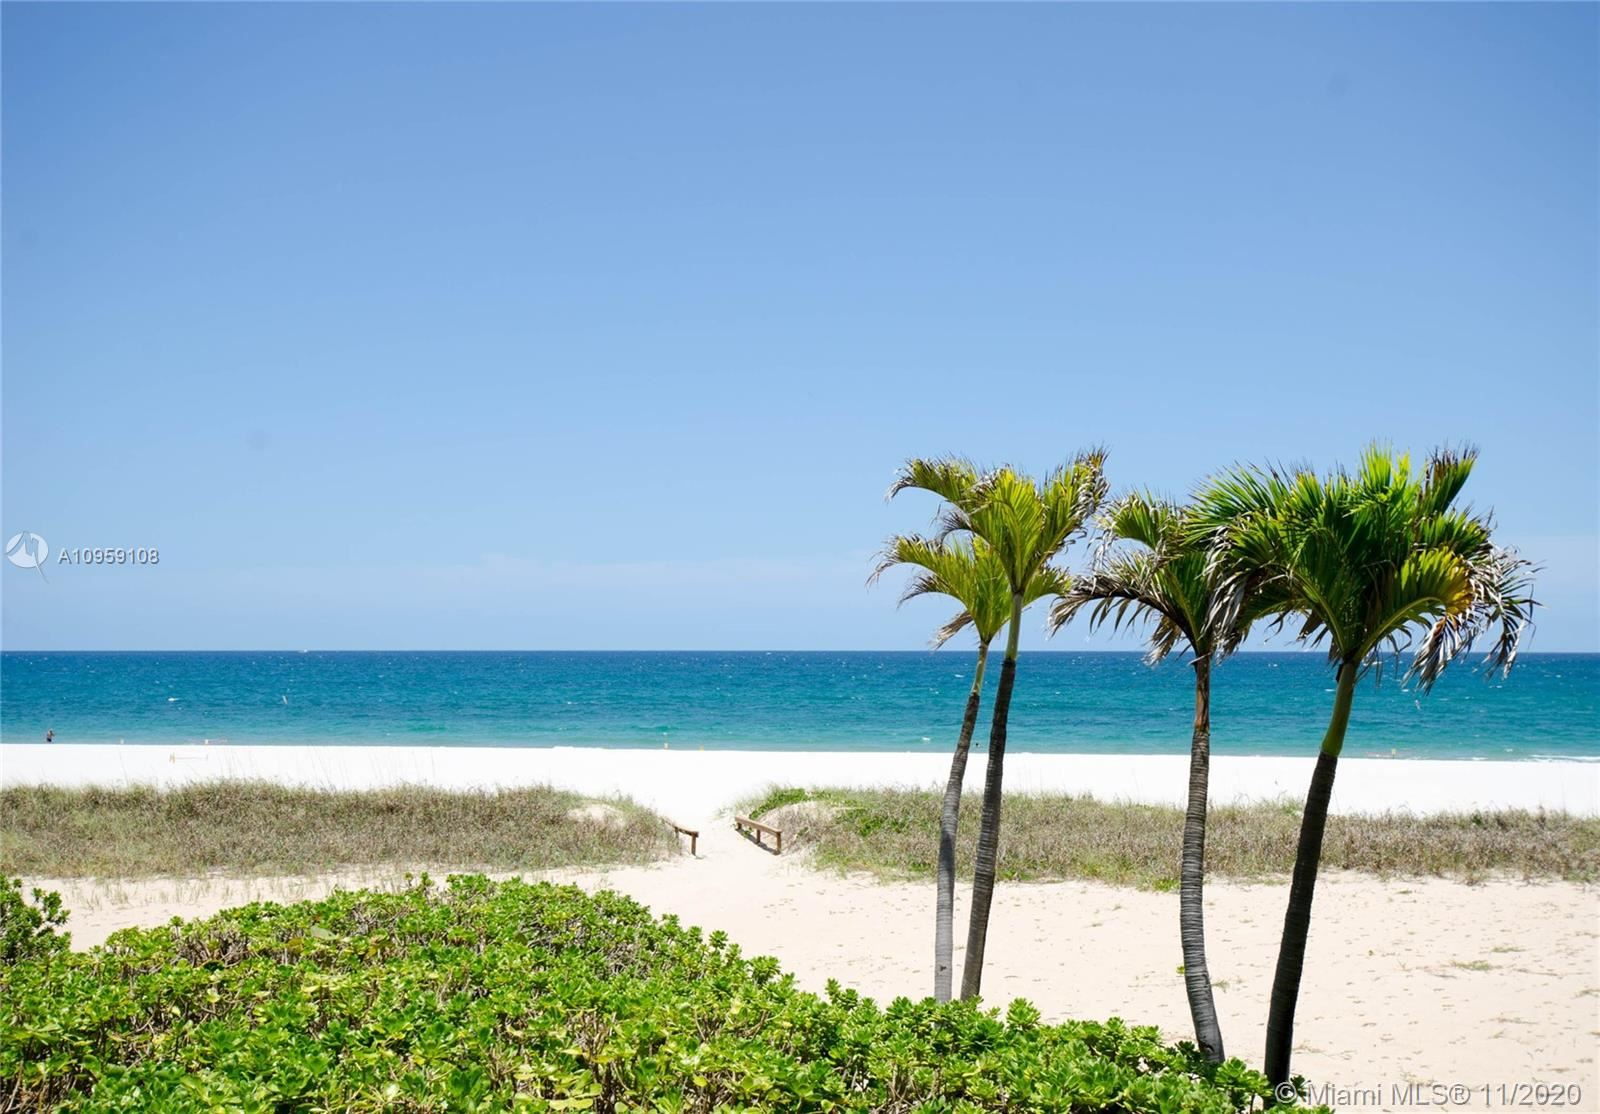 Photo of 1800 S Ocean Blvd #201, Lauderdale By The Sea, FL 33062 (MLS # A10959108)